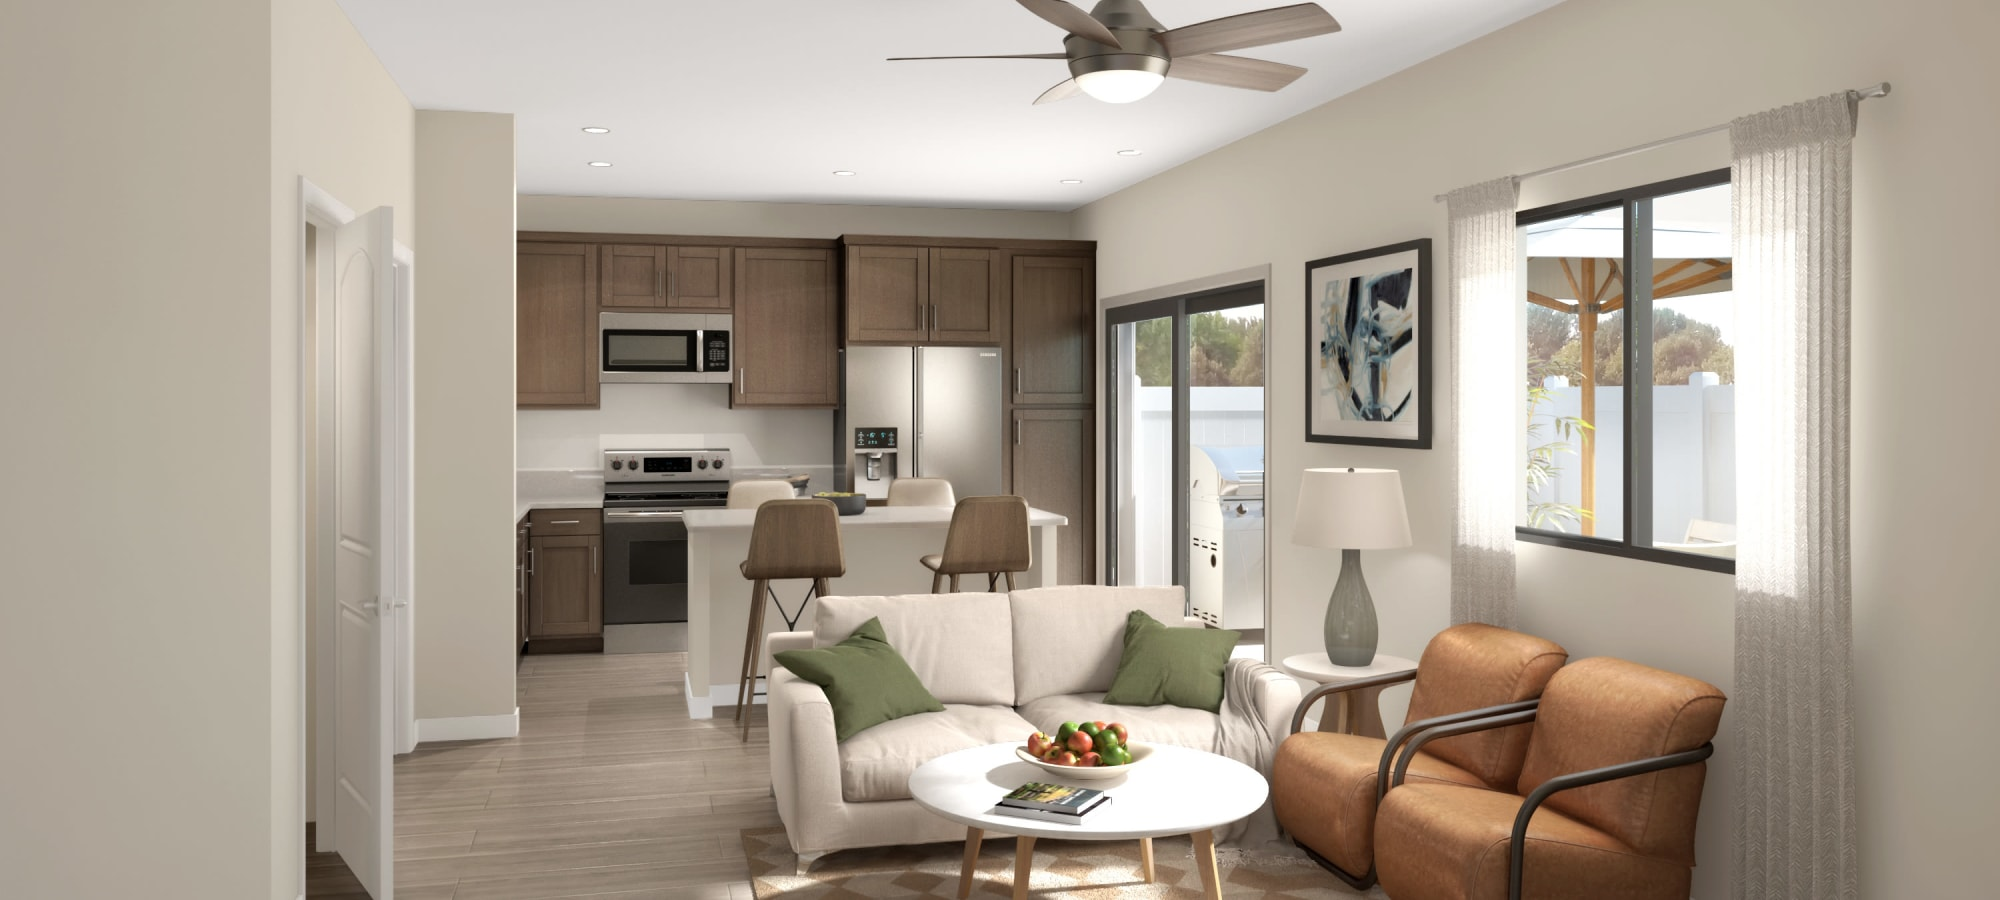 View of the living & kitchen at Tavalo at Cadence in Mesa, Arizona